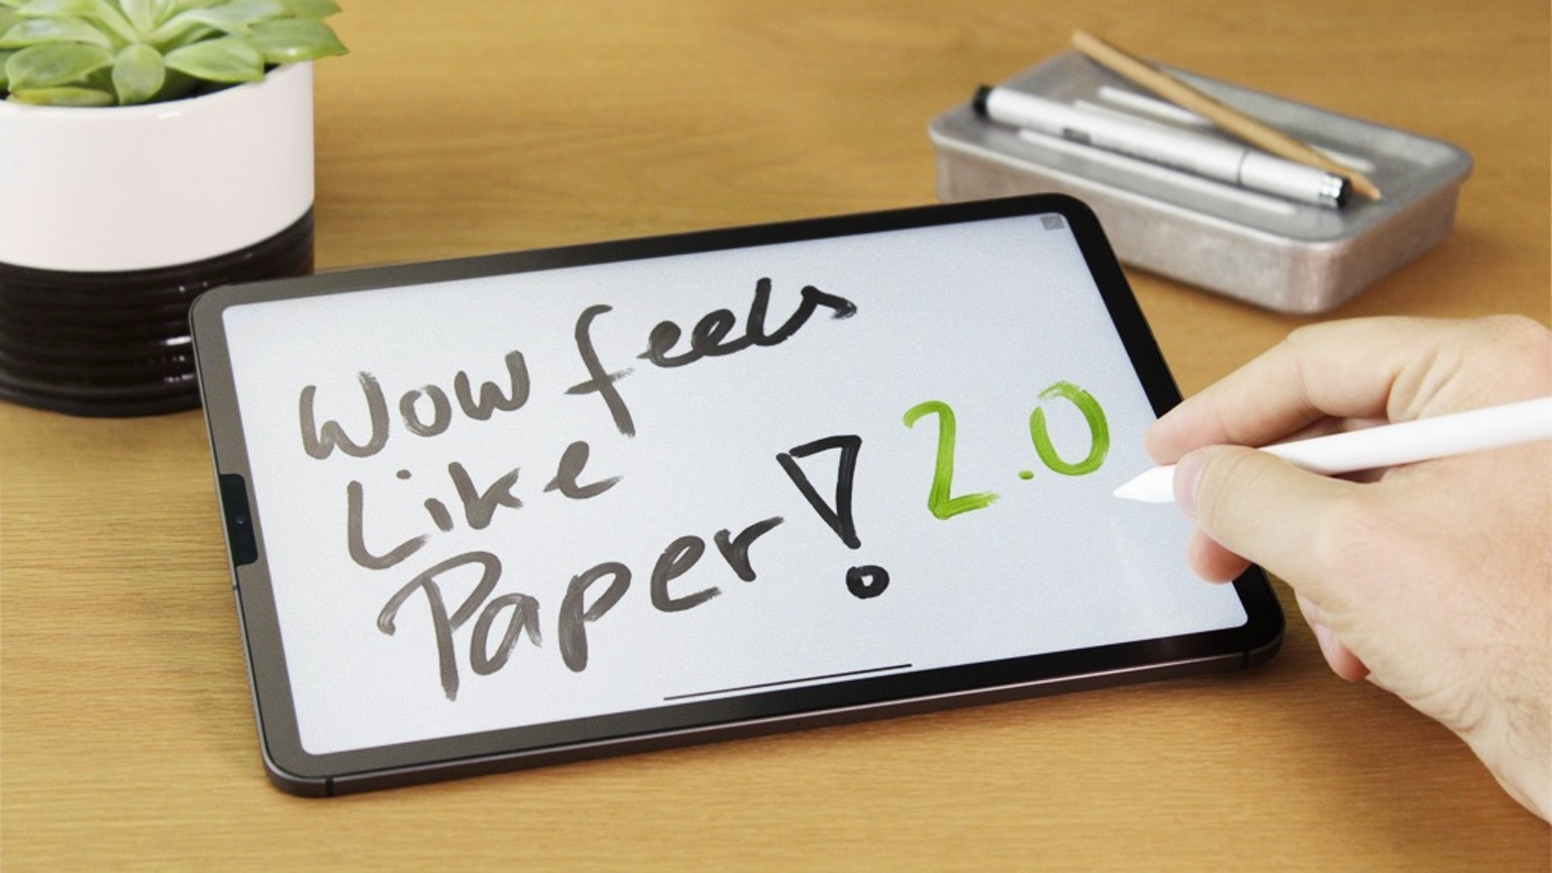 Love your iPad even more! The improved Paperlike screen protector with Nanodots surface, makes writing and drawing feel like on paper.